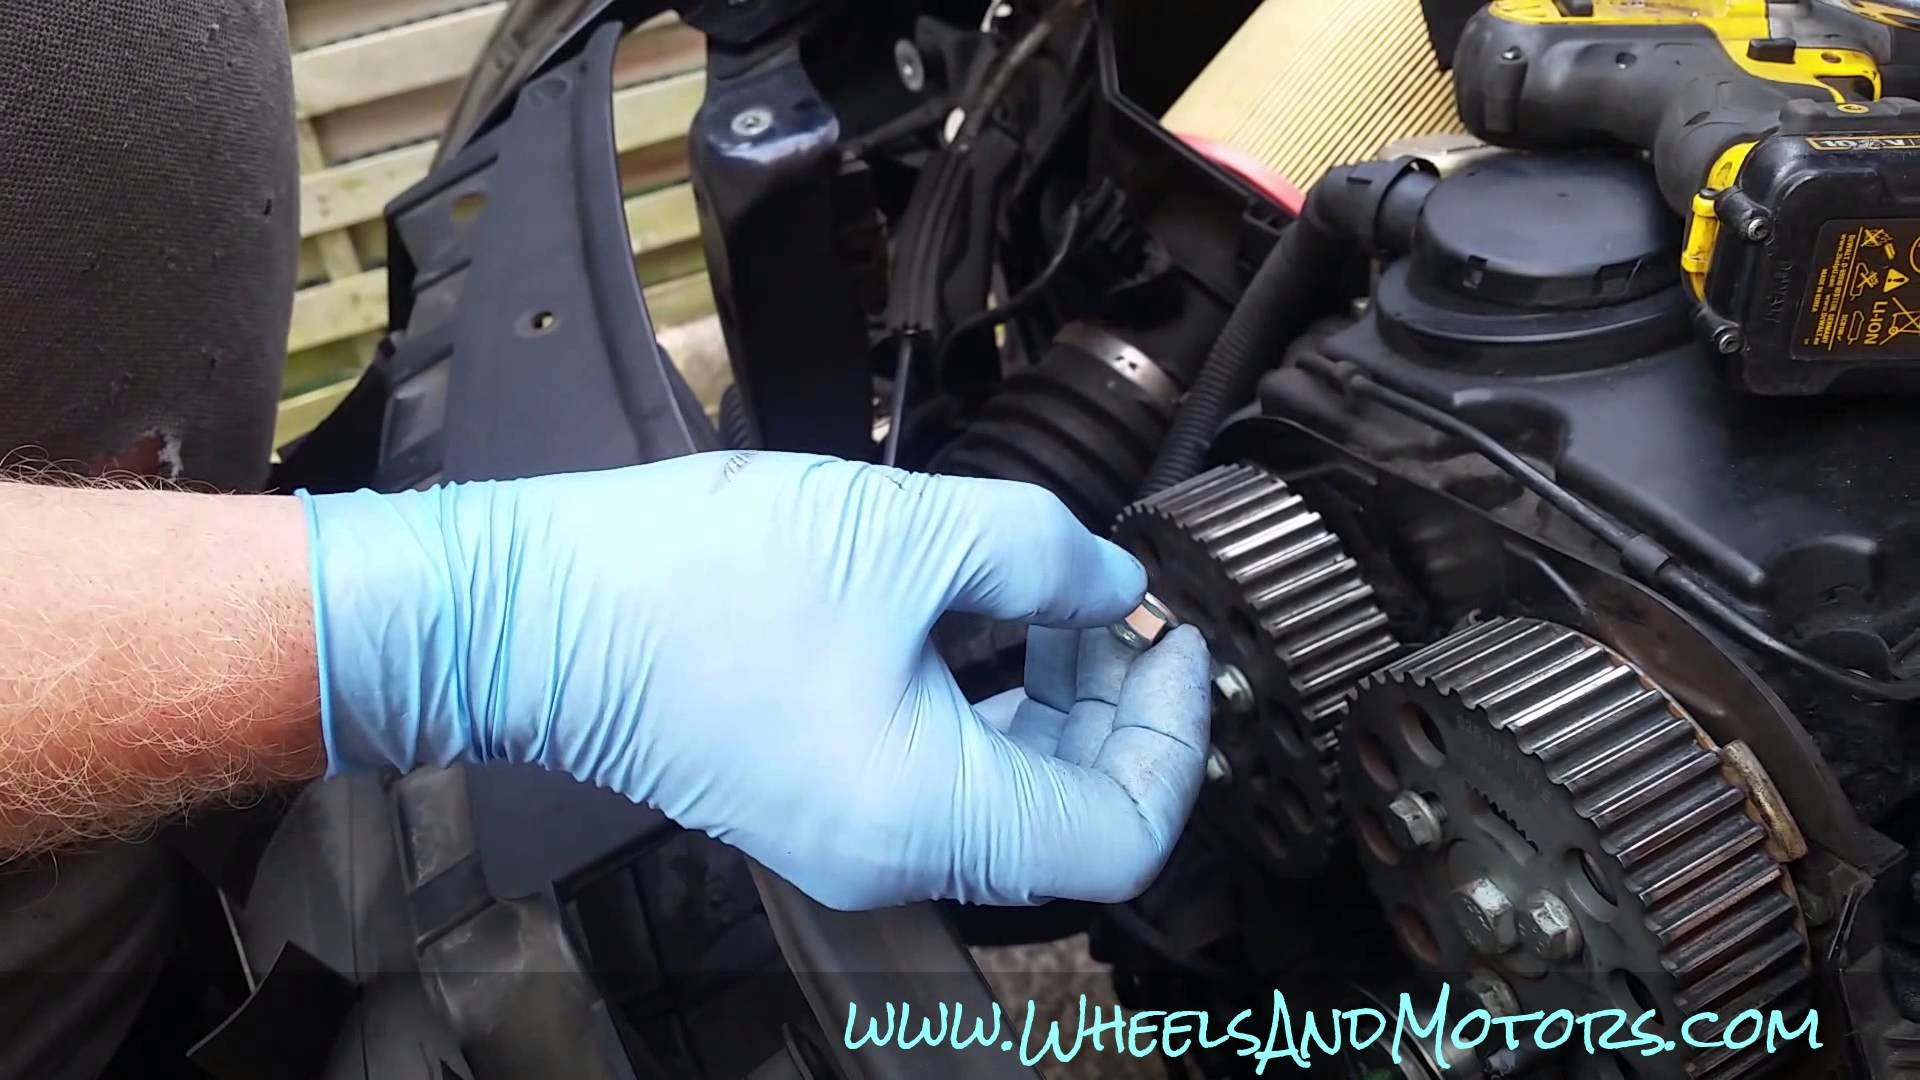 2002 Audi A4 Engine Diagram How to Replace Timing Belt Cambelt and Water Pump On 2 0 Tdi Of 2002 Audi A4 Engine Diagram